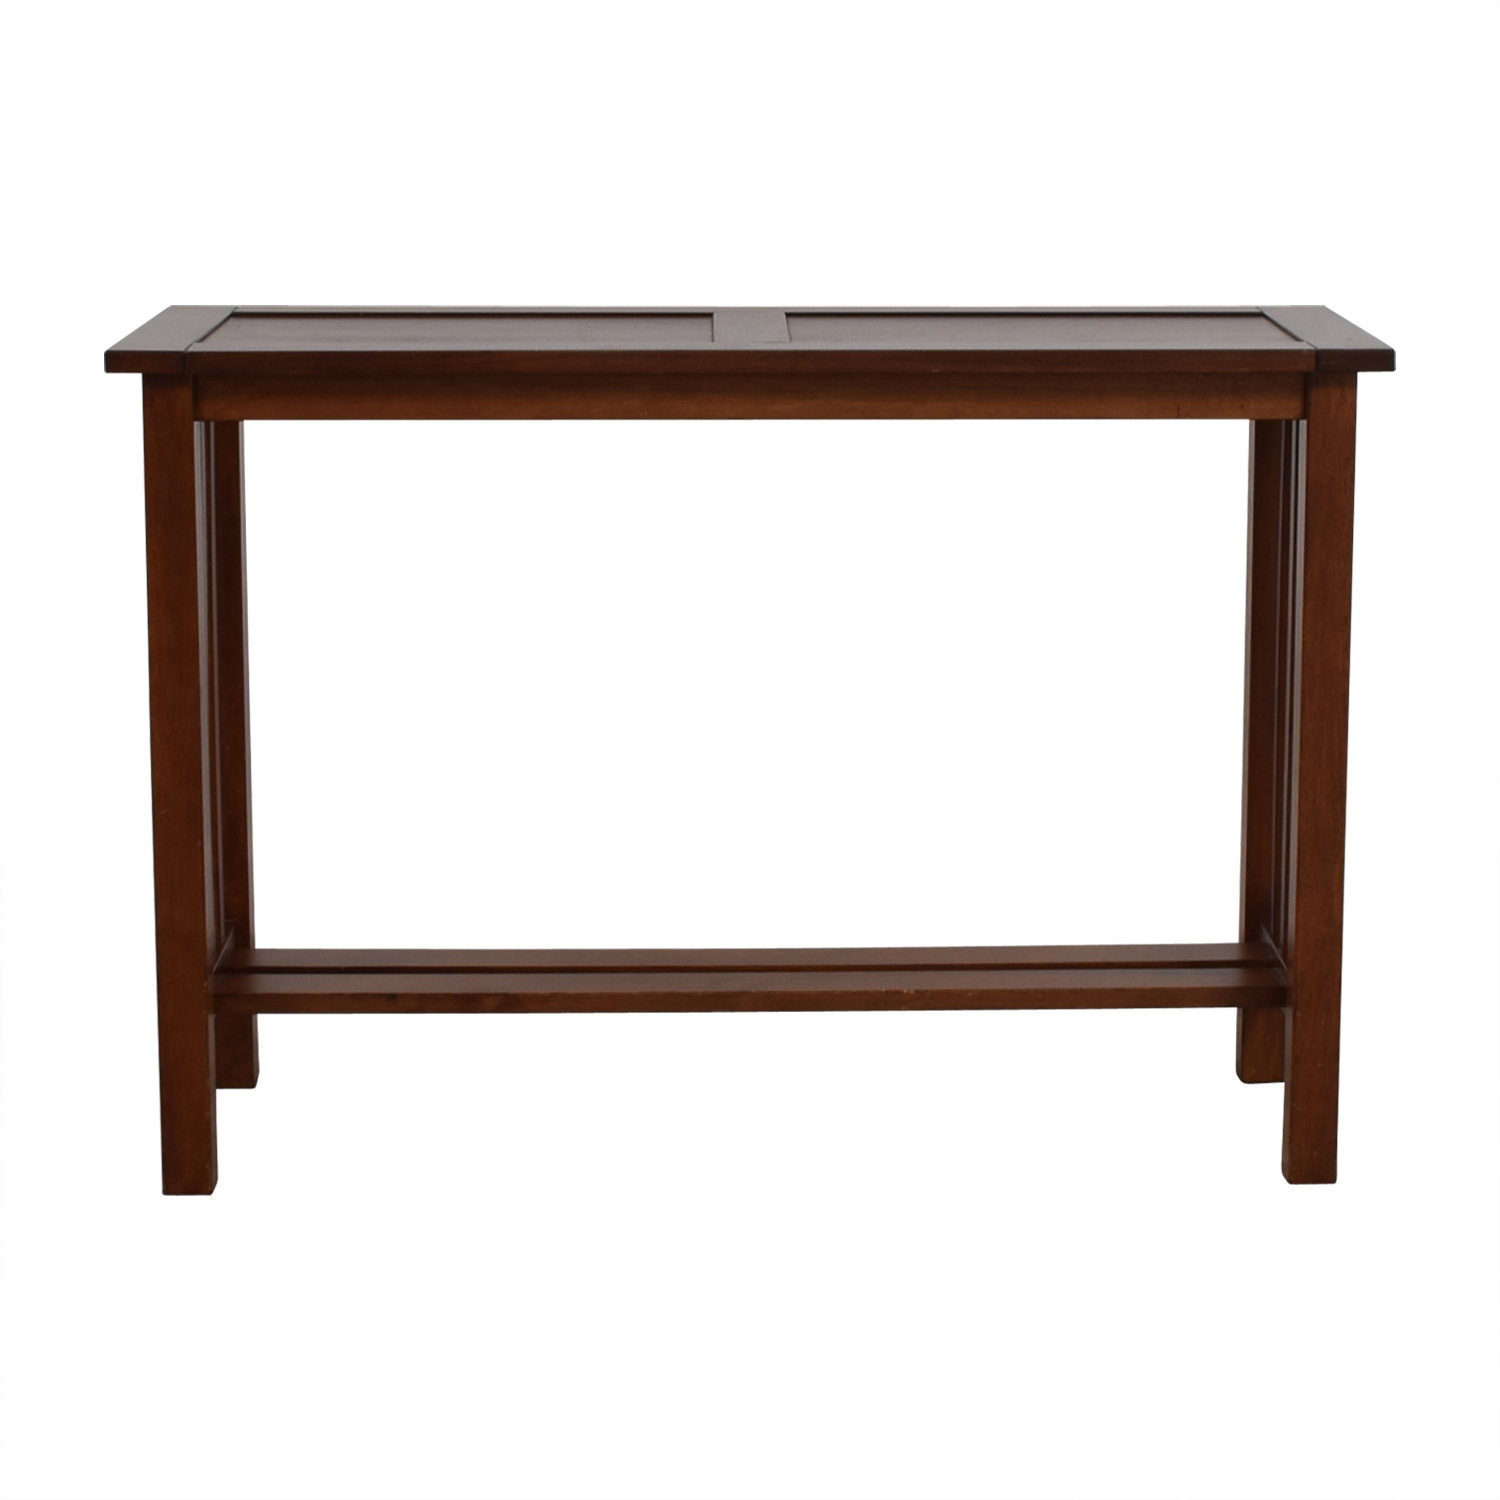 Crate & Barrel Console Table Crate & Barrel